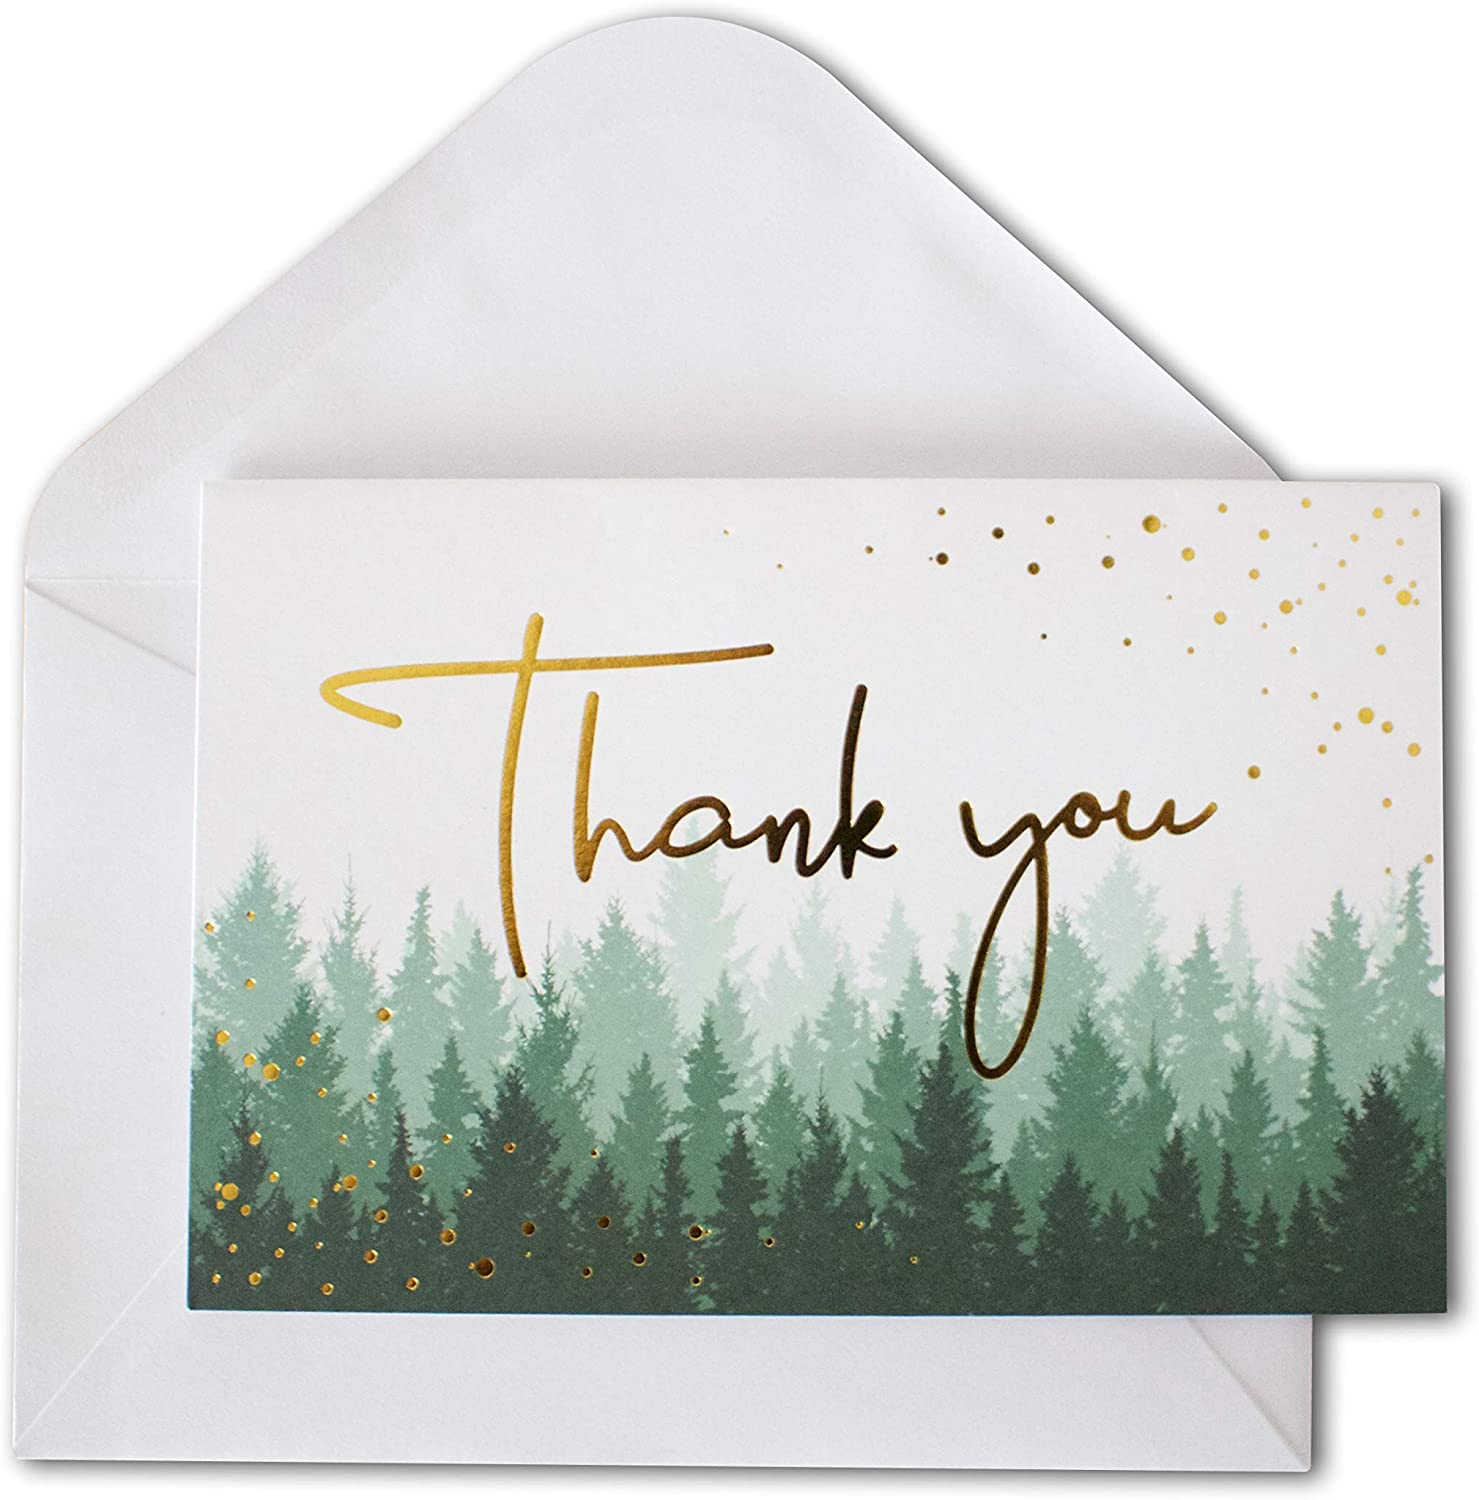 Thank You Cards with Envelopes | 48 Gold Foil Forest Nature | Wedding, Bridal Shower, Baby Shower, Graduation, Small Business Thank You Notes 4x6 inches Blank Inside